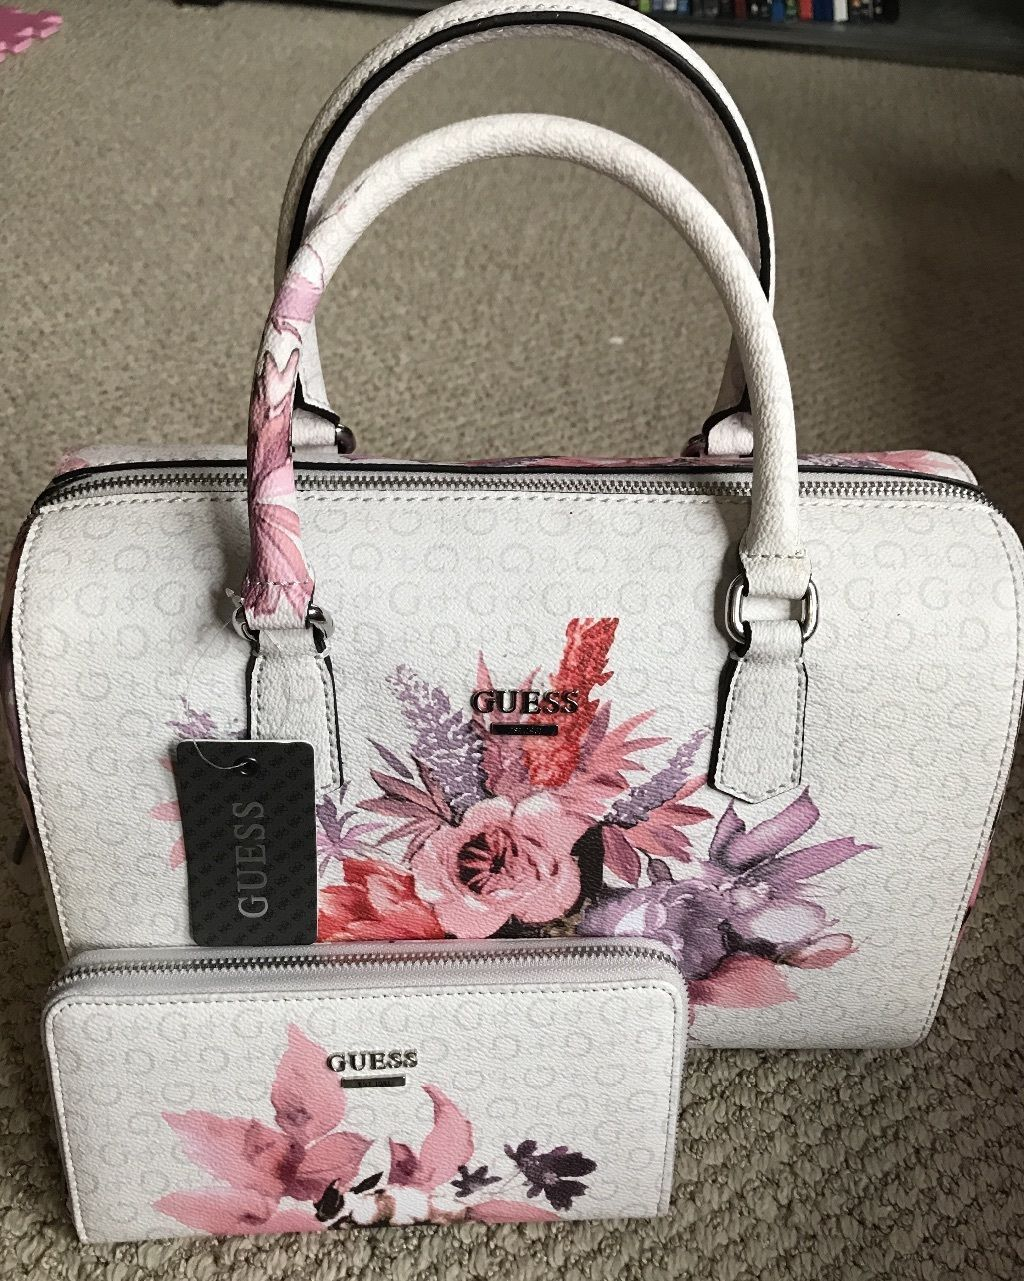 f1c9c10796 GUESS Ashville Bag FLORAL Wallet SET White PINK ROSE Box Satchel Tote LOGO  Purse